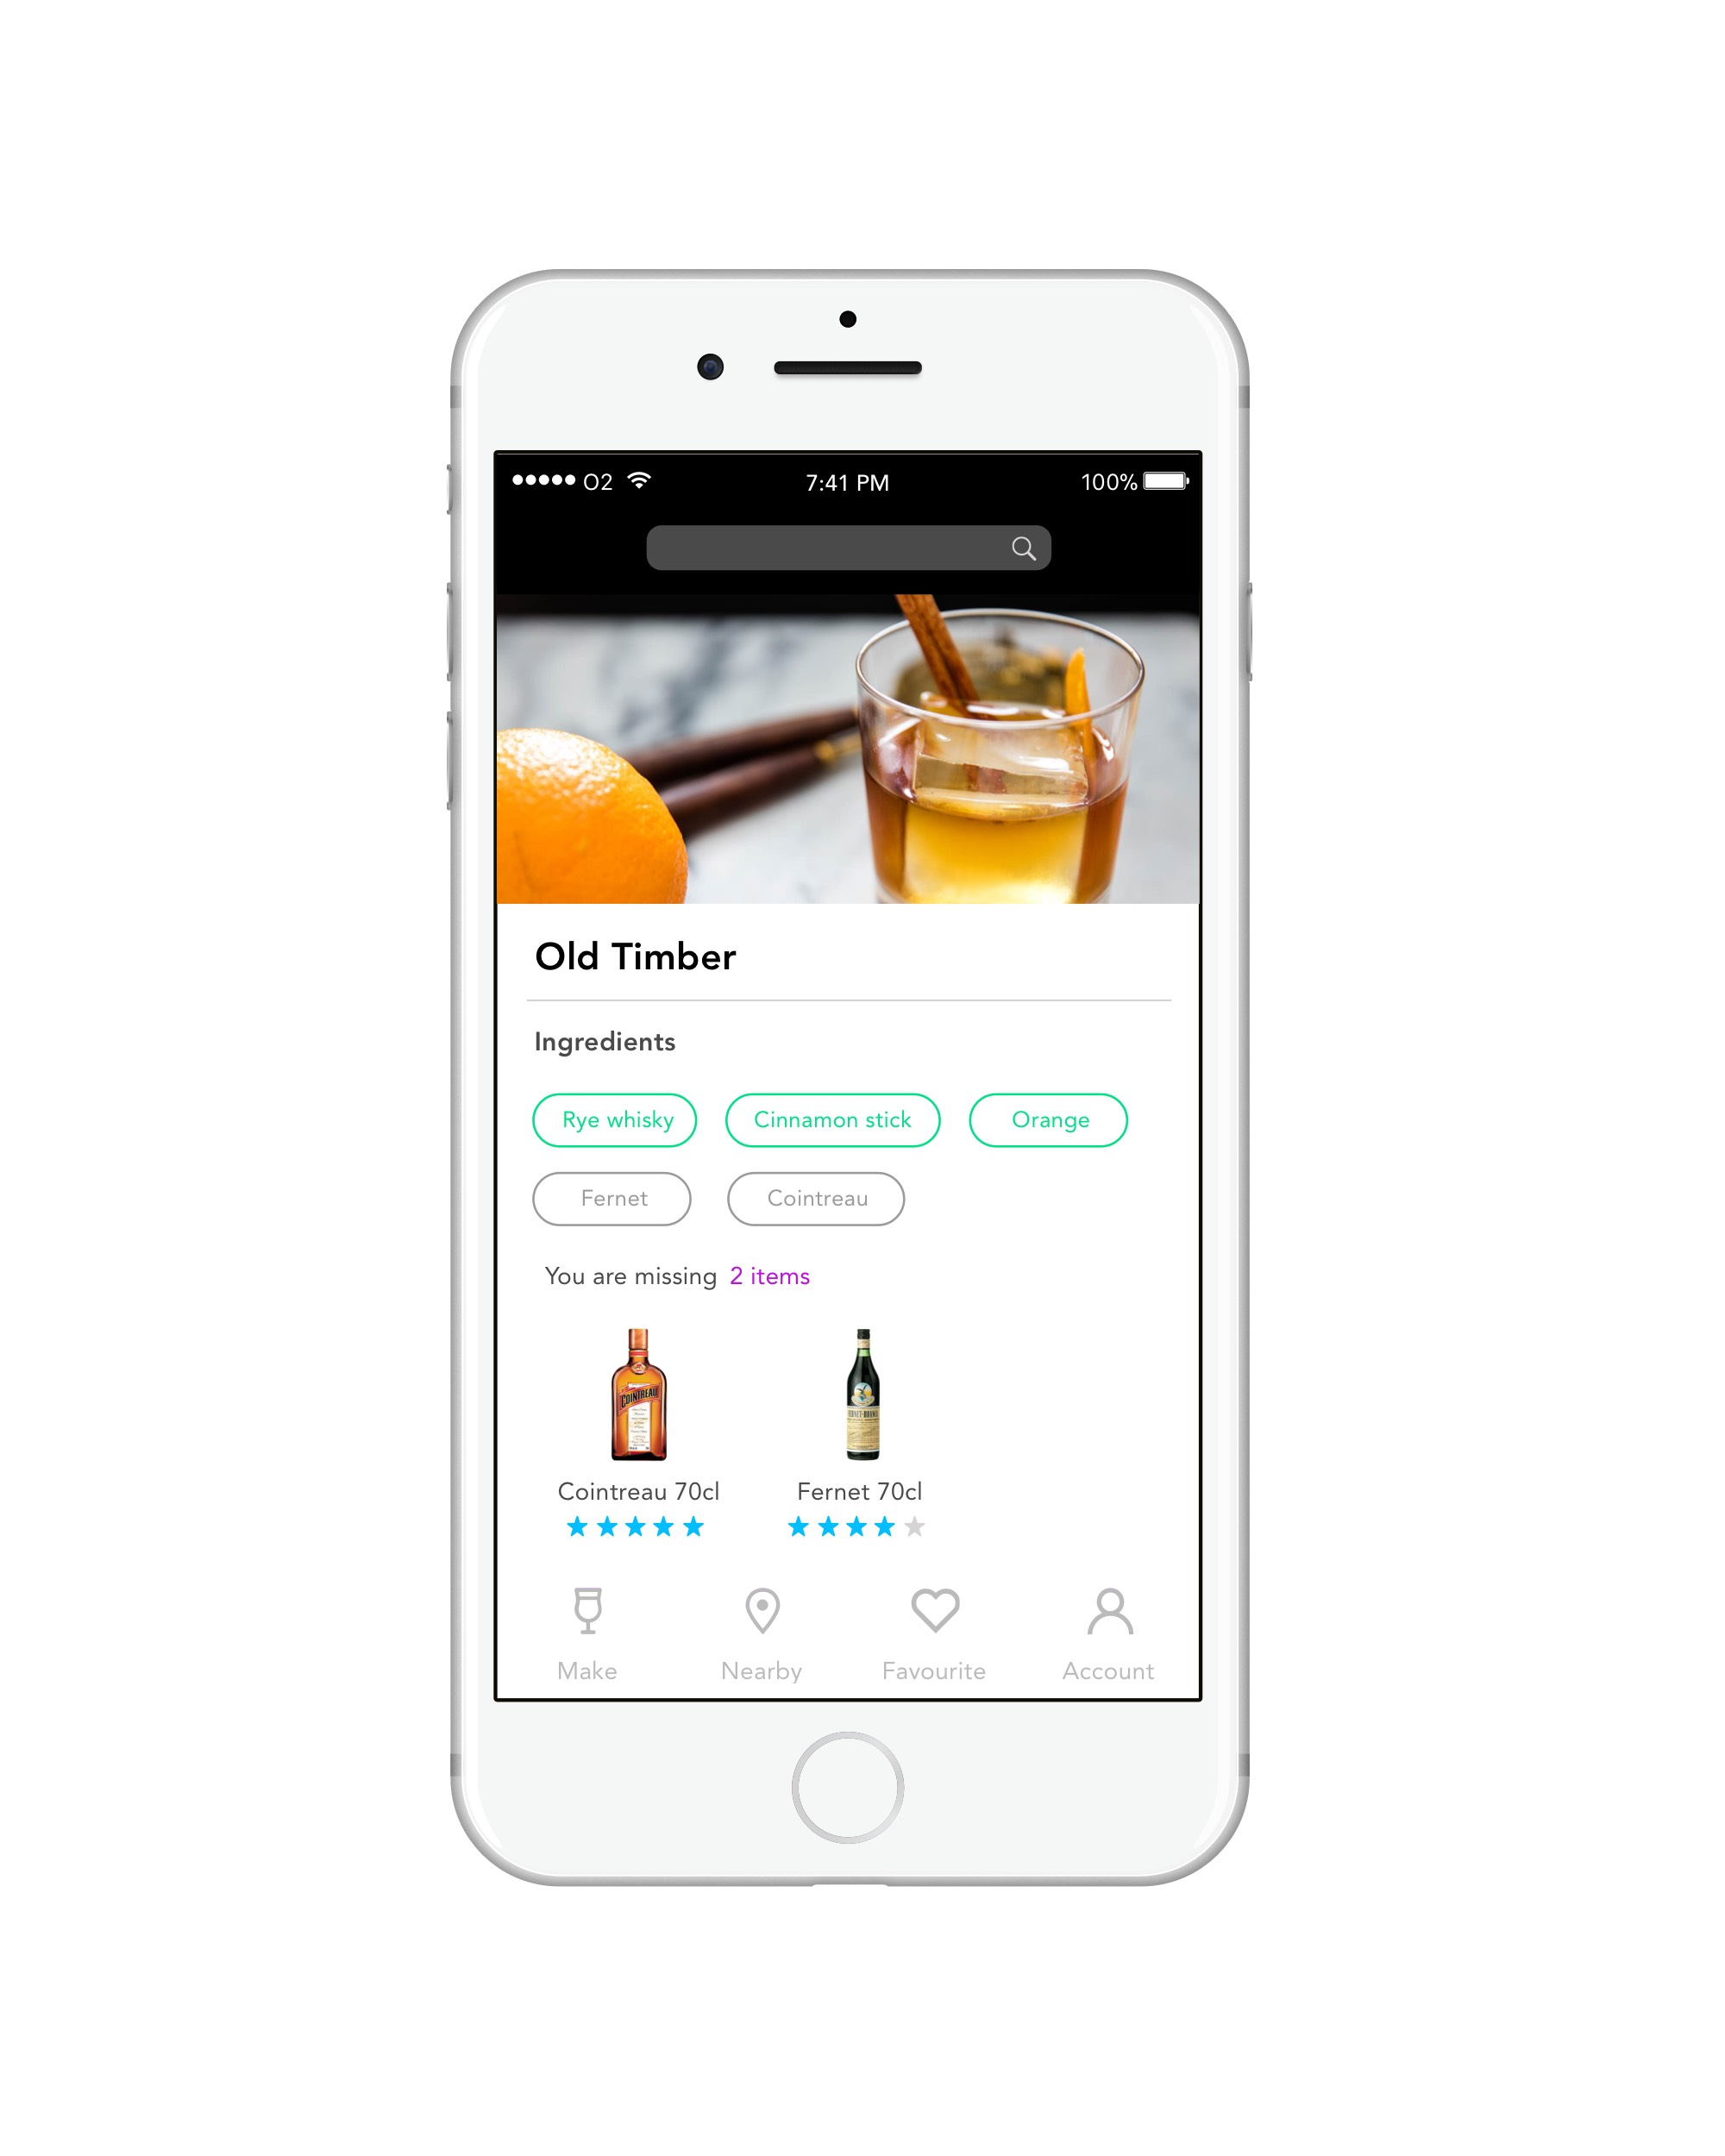 RECIPES BASED ON EXISTING INGREDIENTS - A unique feature of the app is the functionality of being recommended Cocktail recipes based on the current ingredients users have at home. Once the user has entered their ingredients either by the scanning function or manual input the app will suggest recipes. The app will also recommend recipes the user can potentially make if they choose to add a few more ingredients which are highlighted. This will allow any sponsors or investors to promote their product to a target audience.